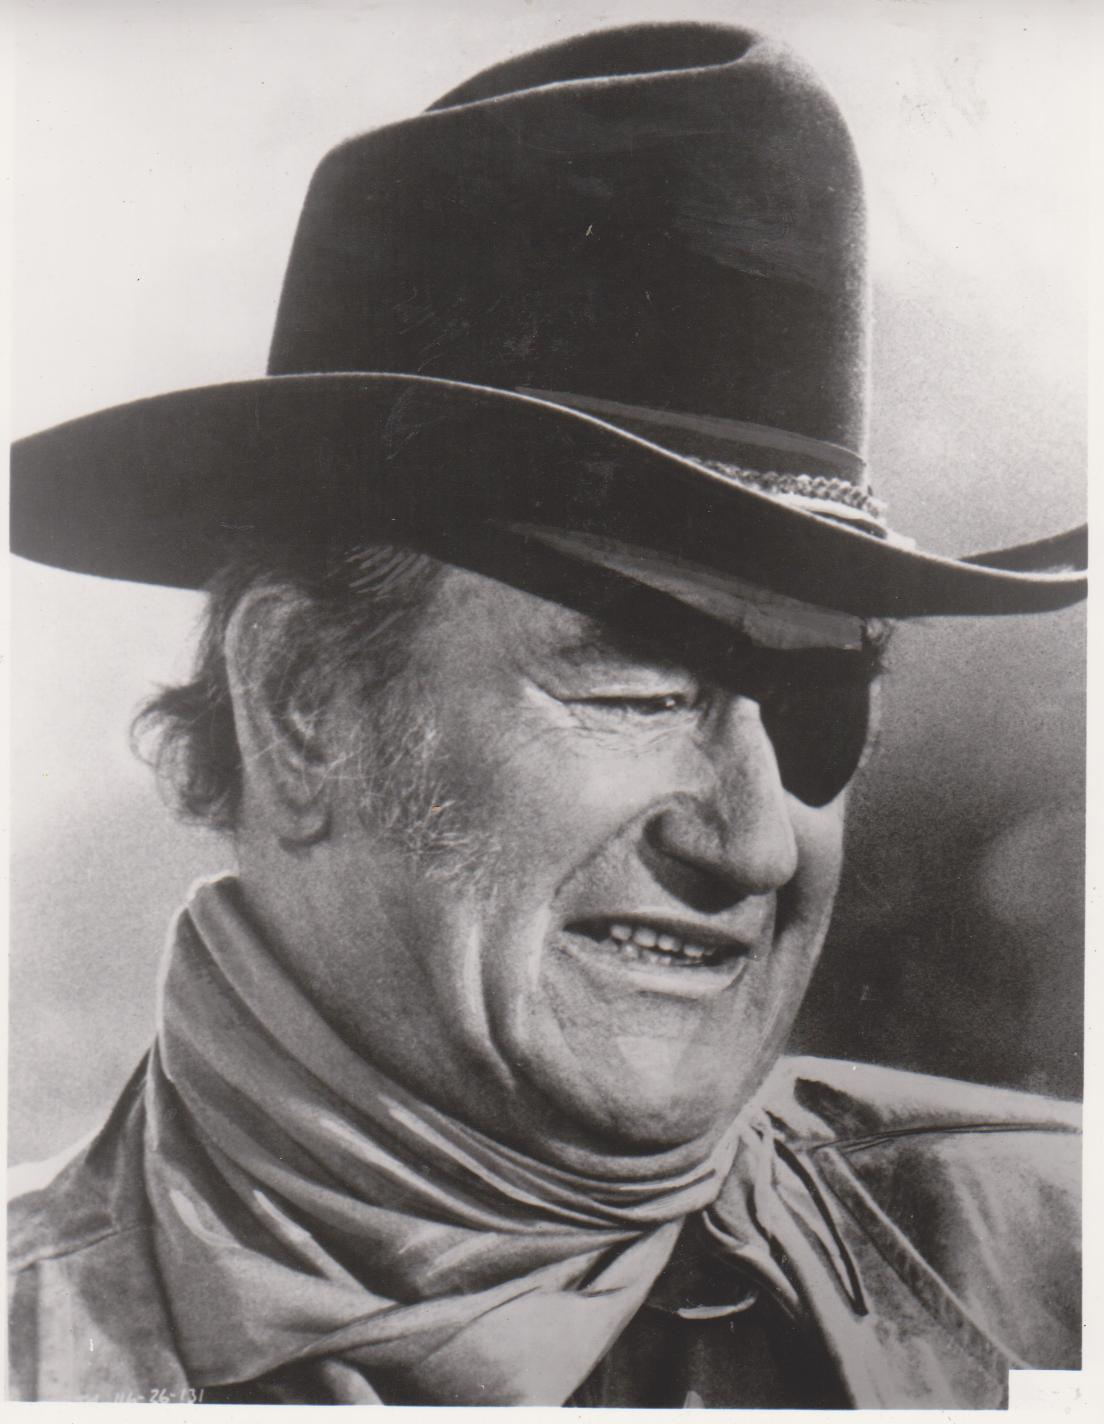 Primary image for True Grit QP John Wayne Vintage 8X10 BW Western Movie Memorabilia Photo